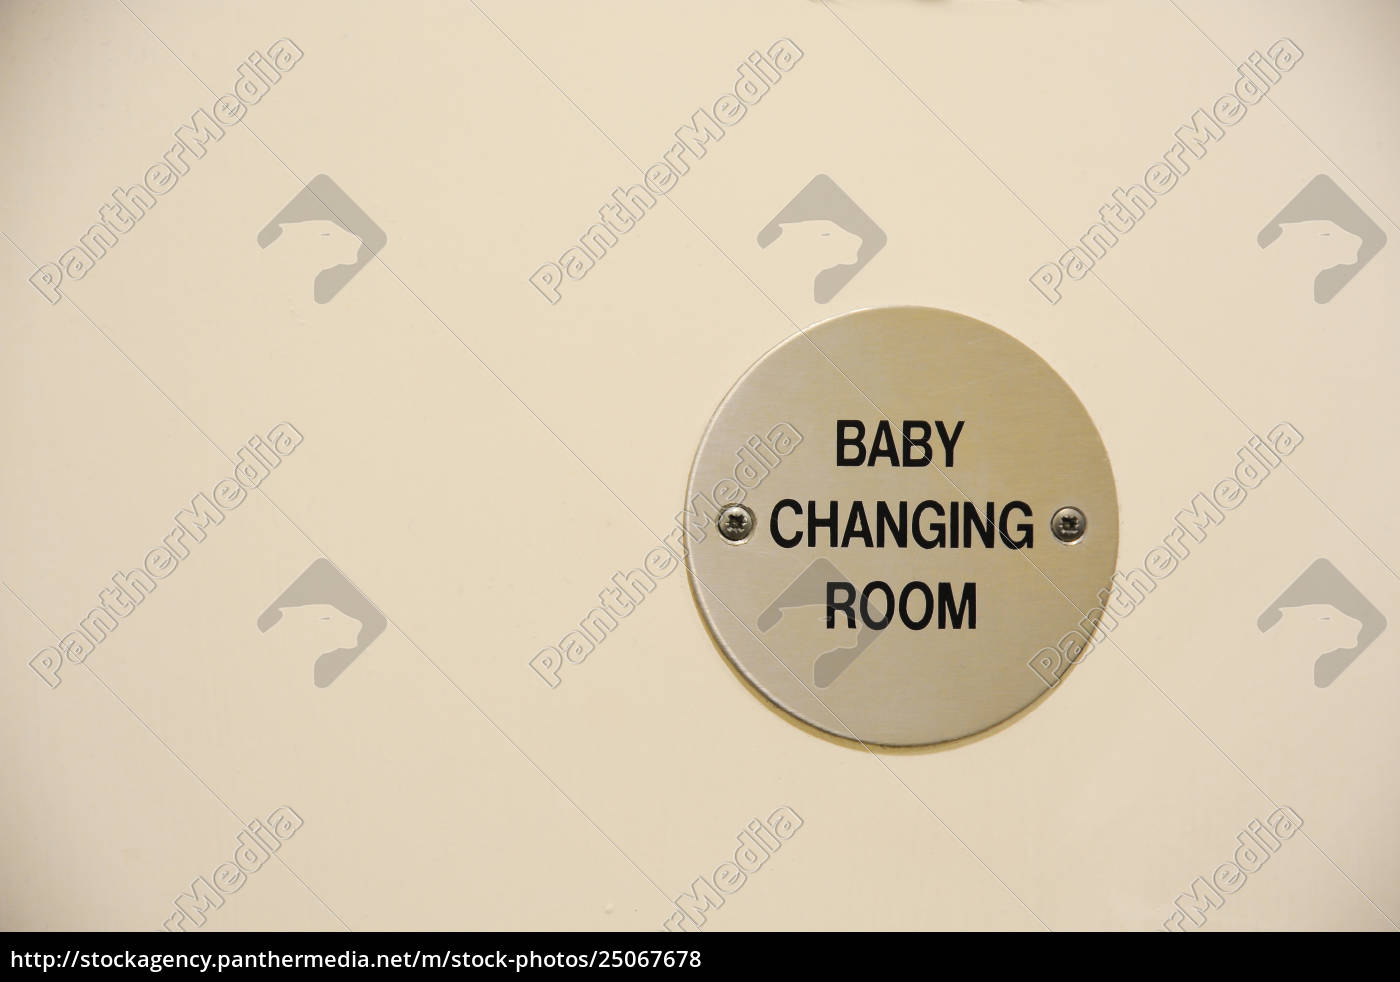 door, sign, hint, wrap, room - 25067678